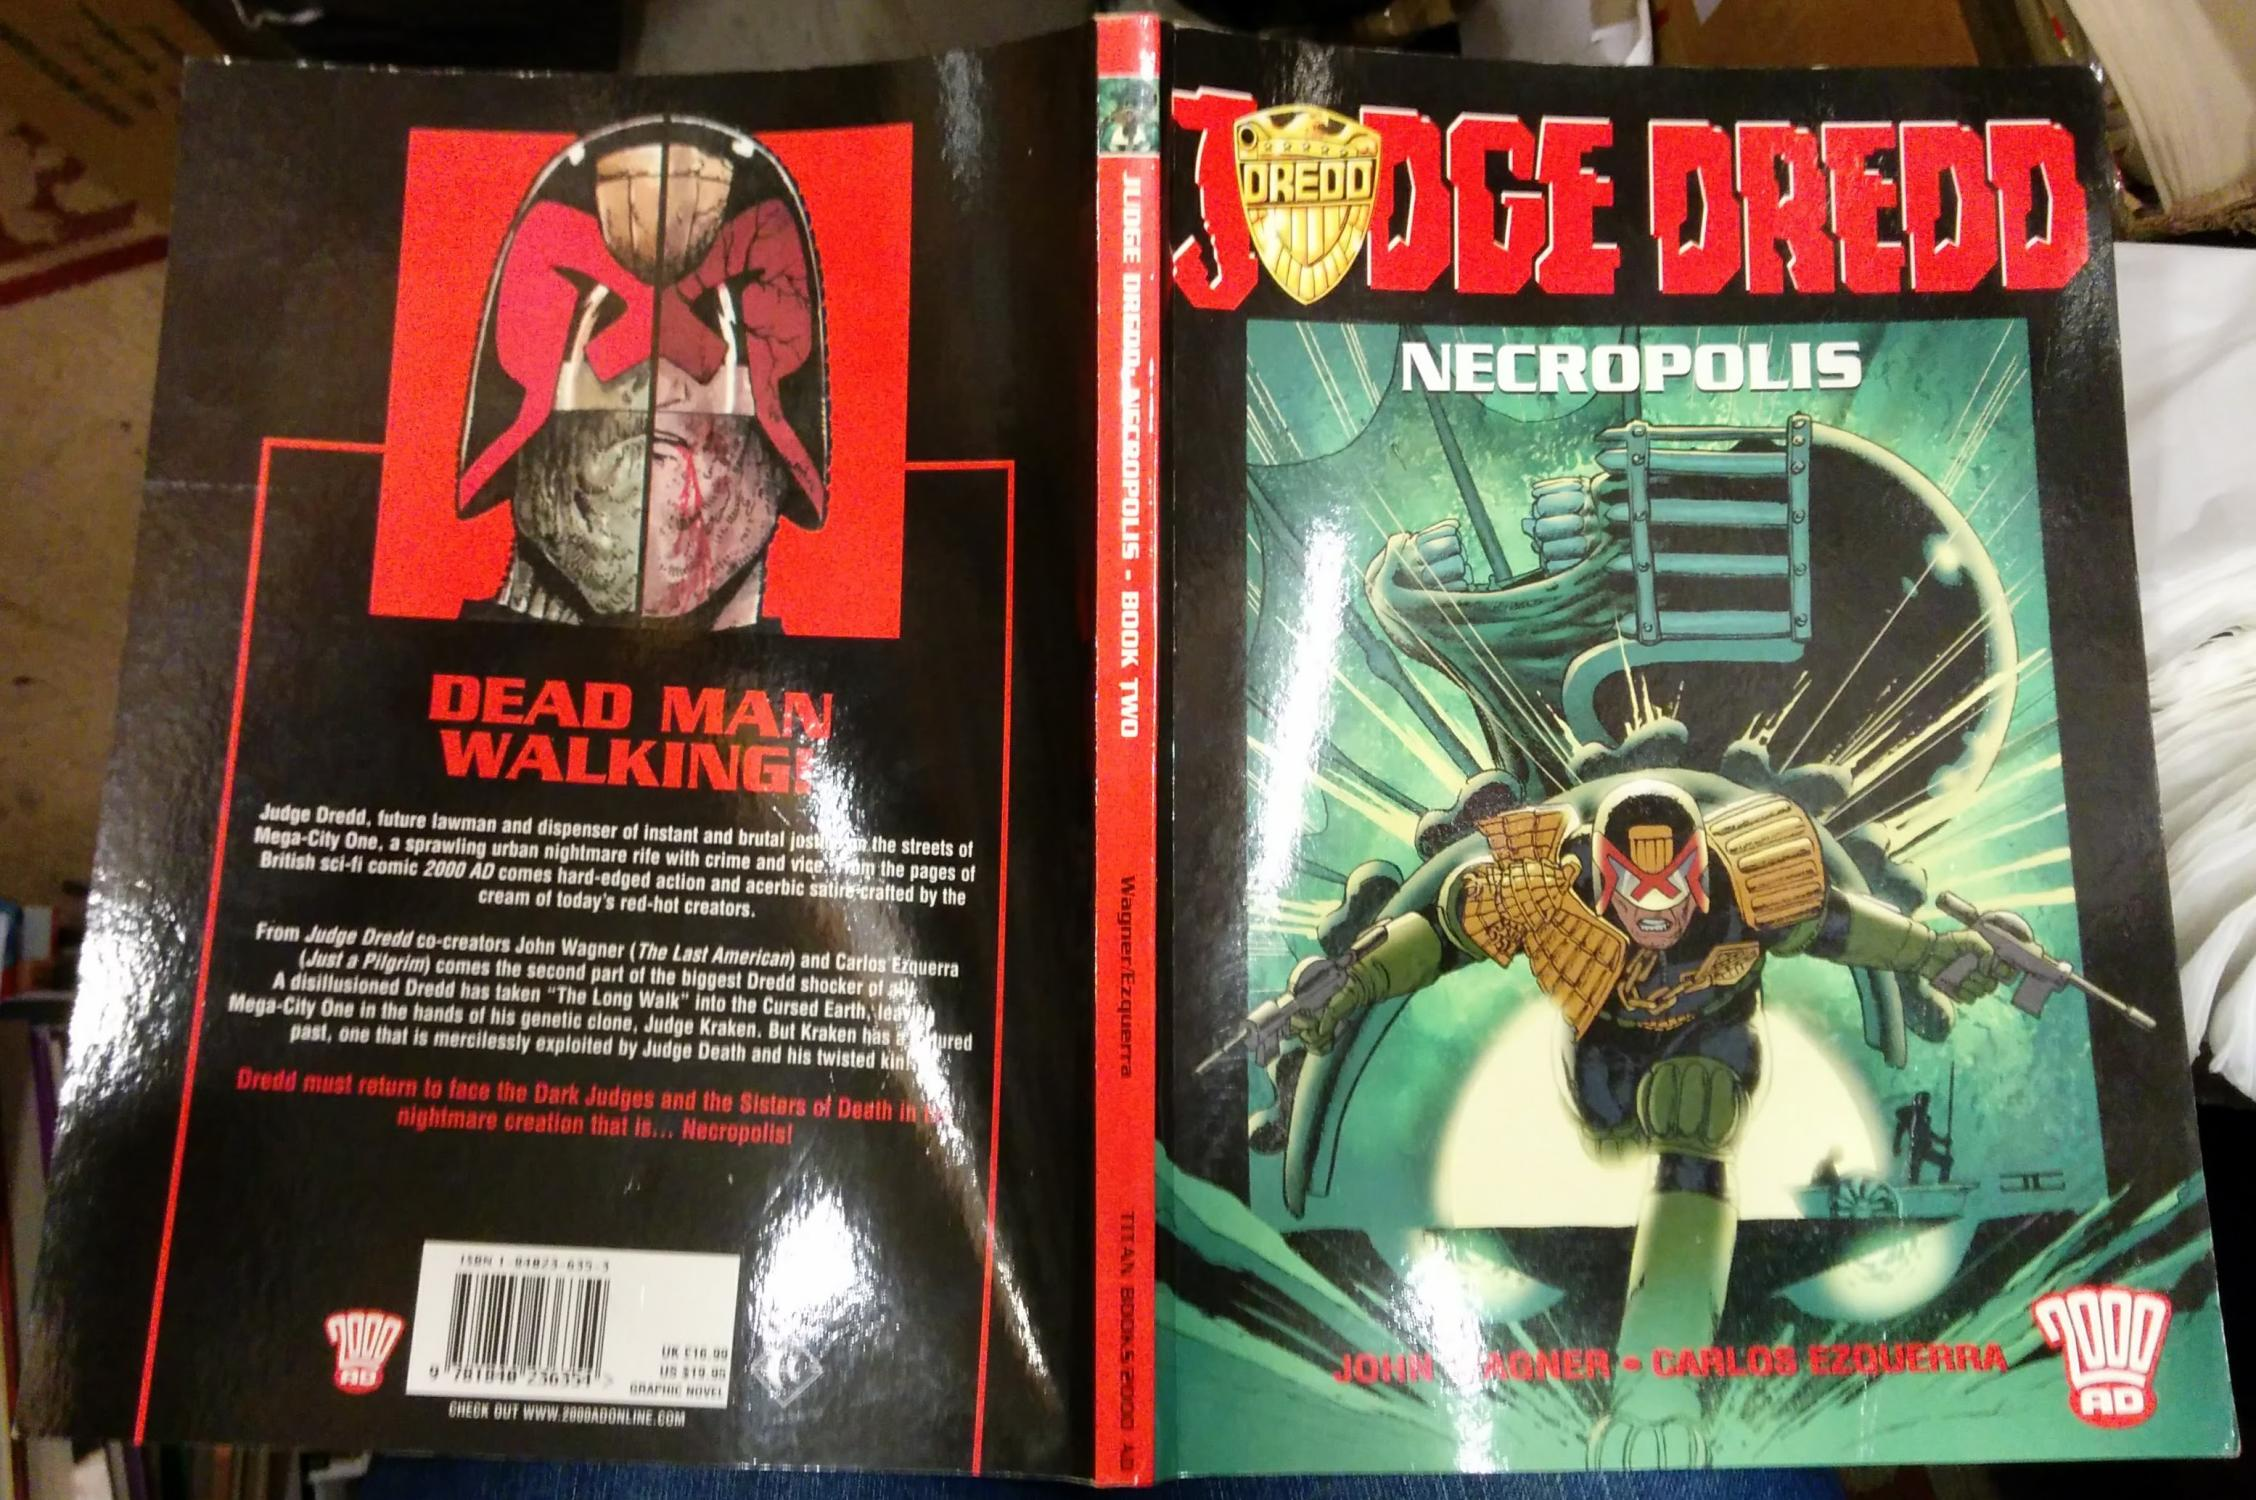 Judge Dredd: Necropolis Book Two by John Wagner